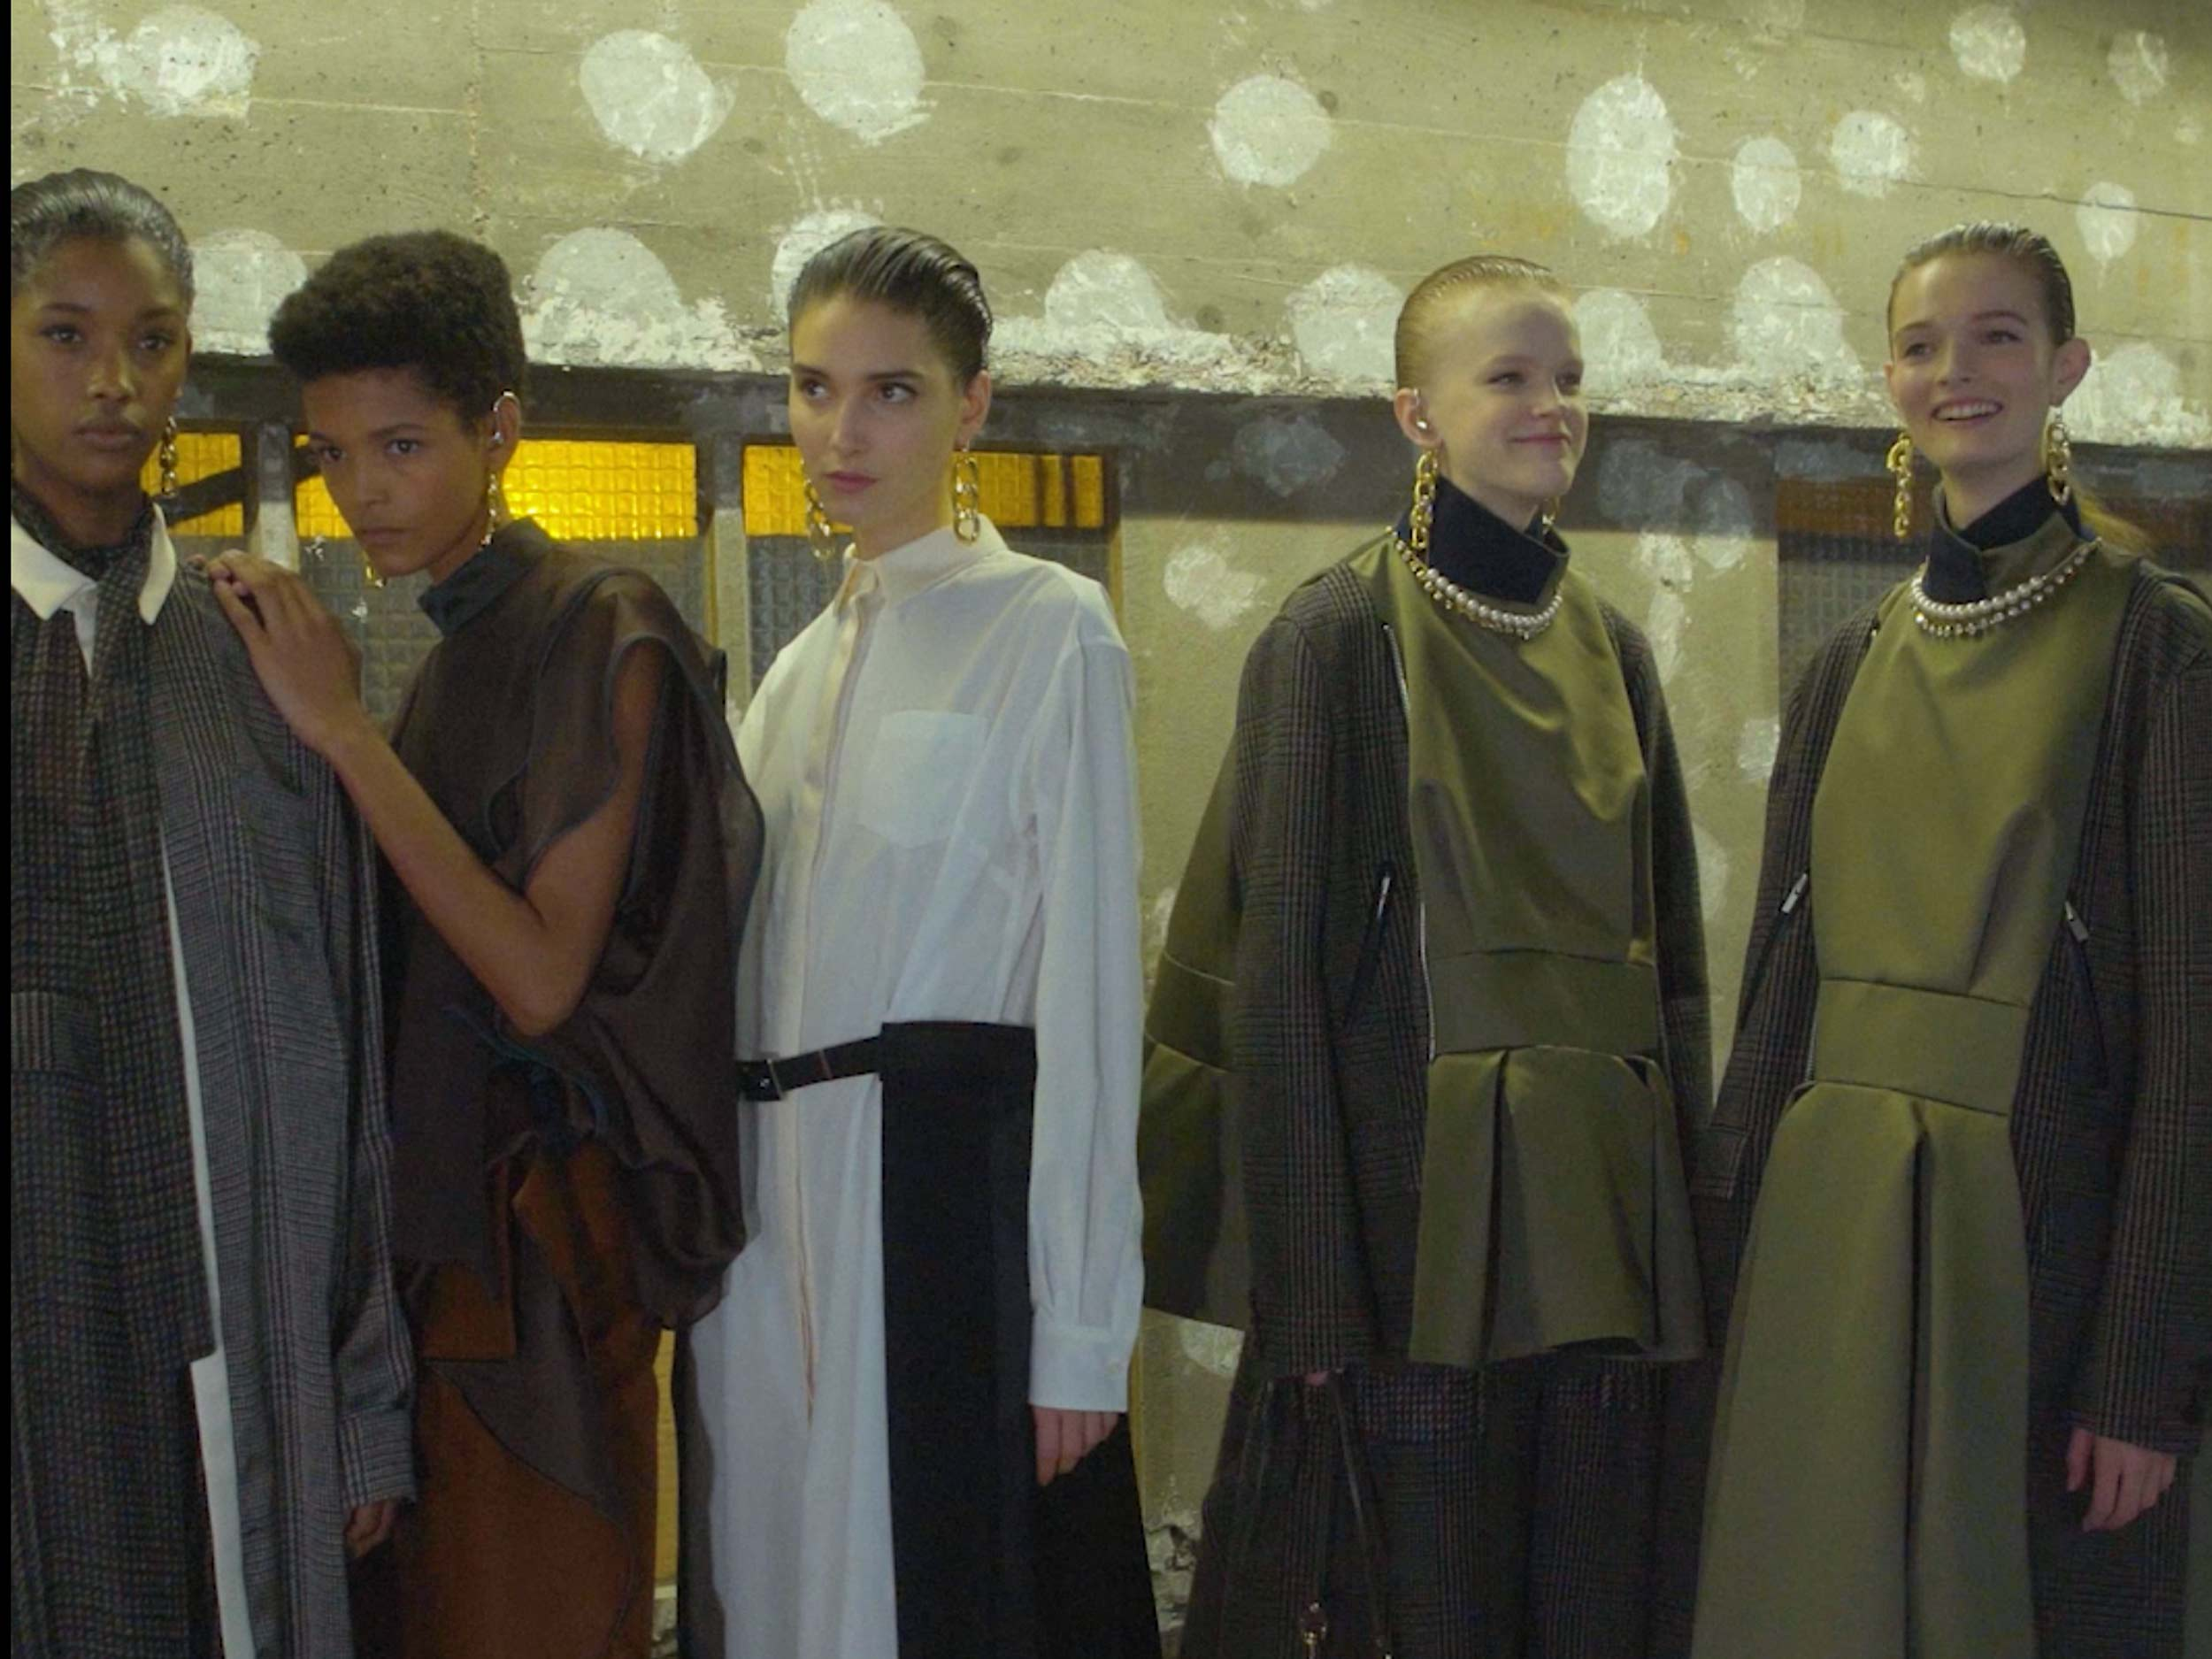 Watch sacai deconstruct all expectations of womenswear